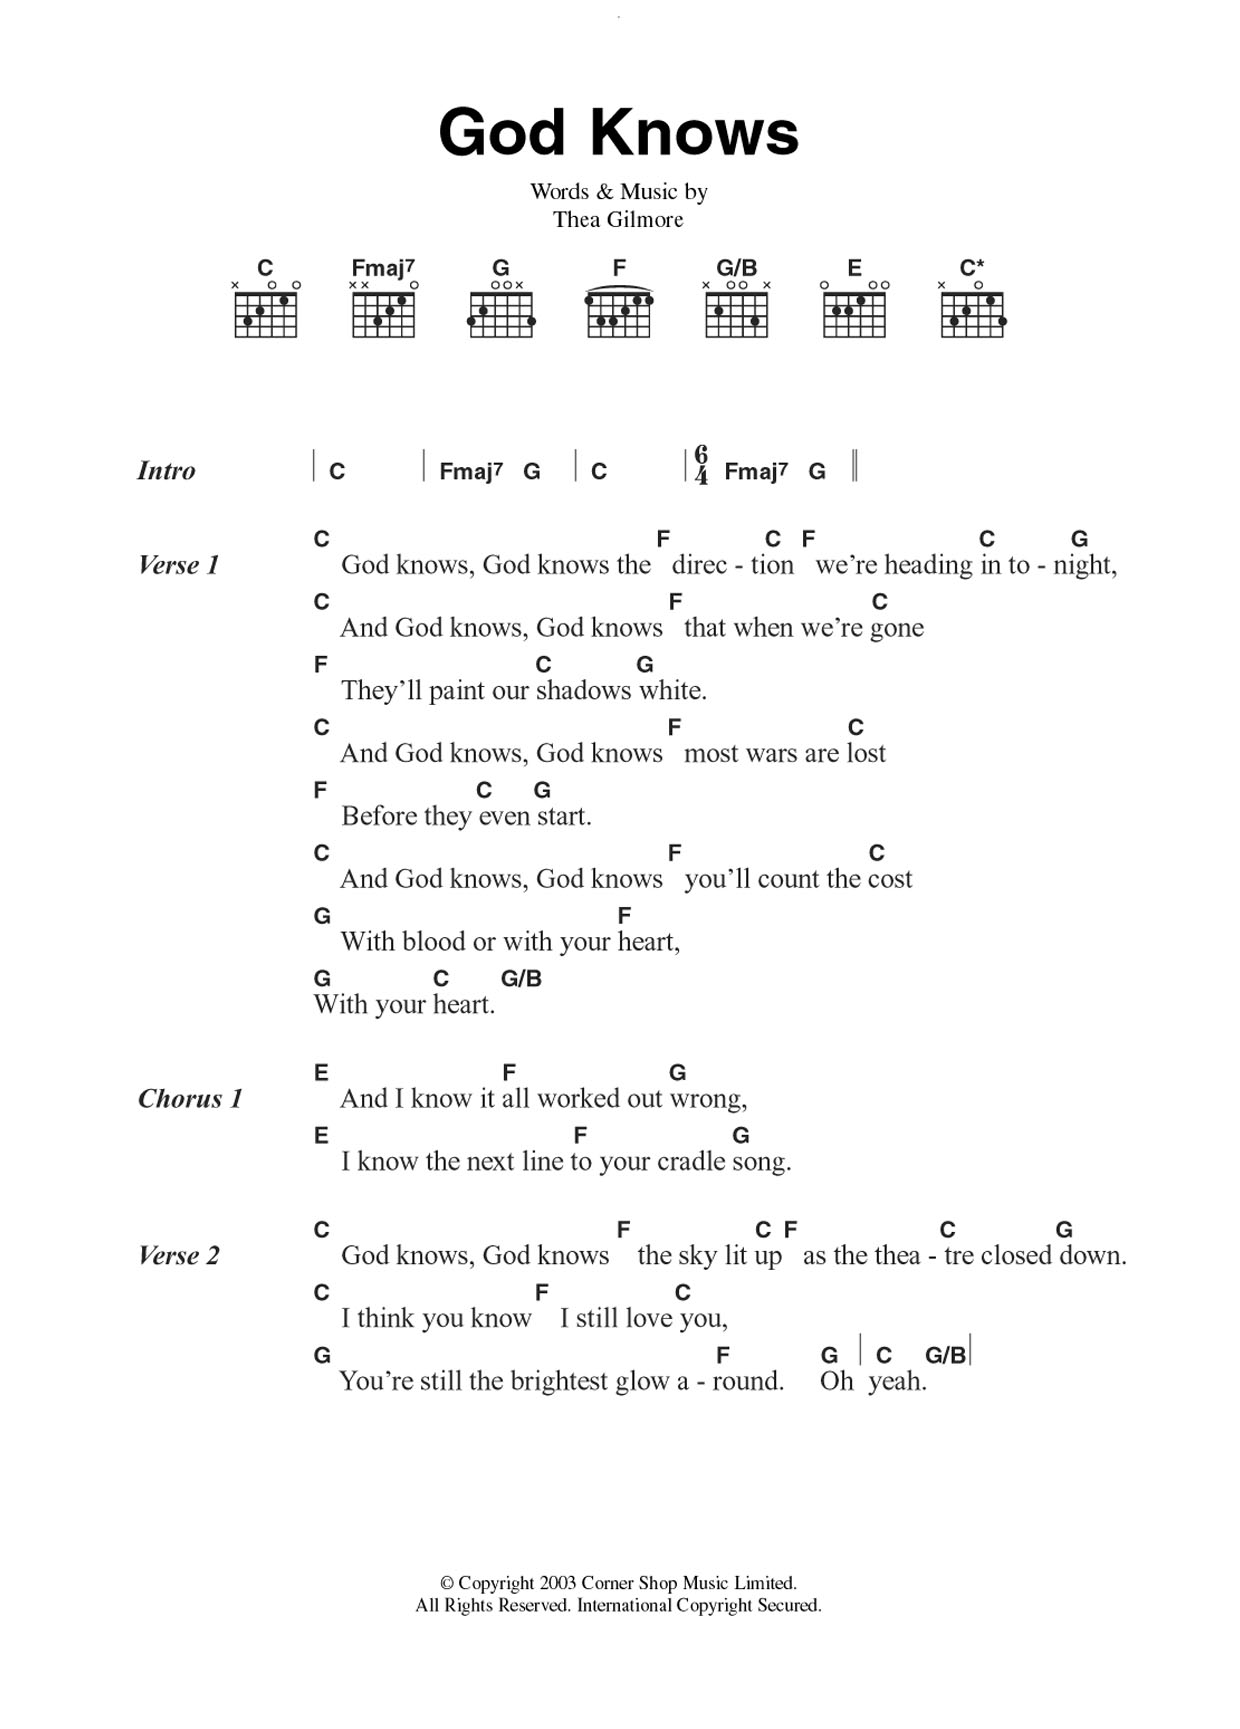 God Knows by Thea Gilmore - Guitar Chords/Lyrics - Guitar